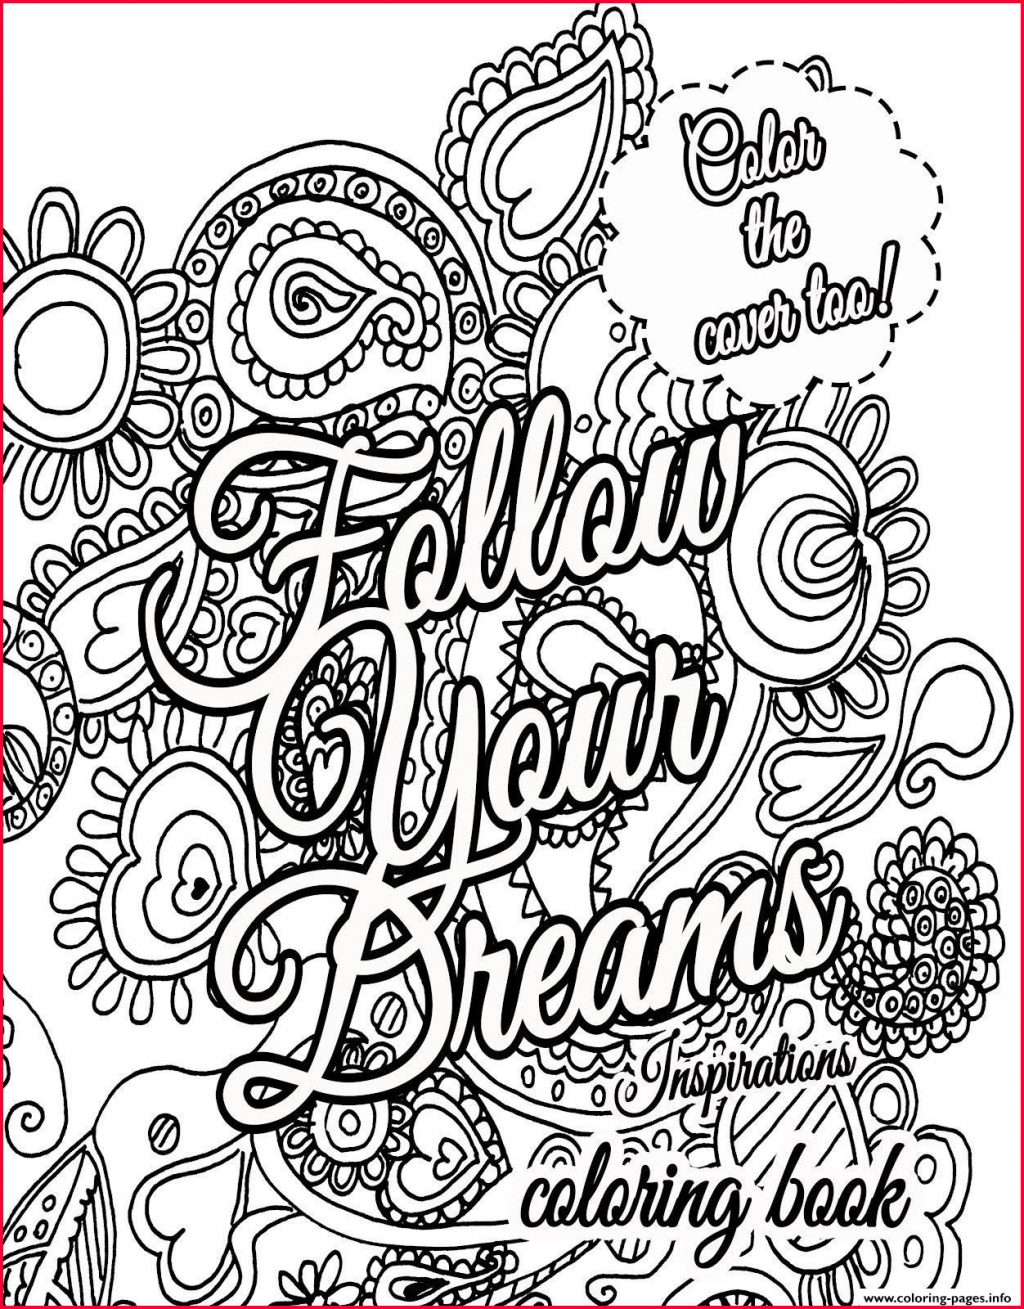 Coloring Pages ~ Printable Coloringages For Adults Free Quote Of - Free Printable Quote Coloring Pages For Adults